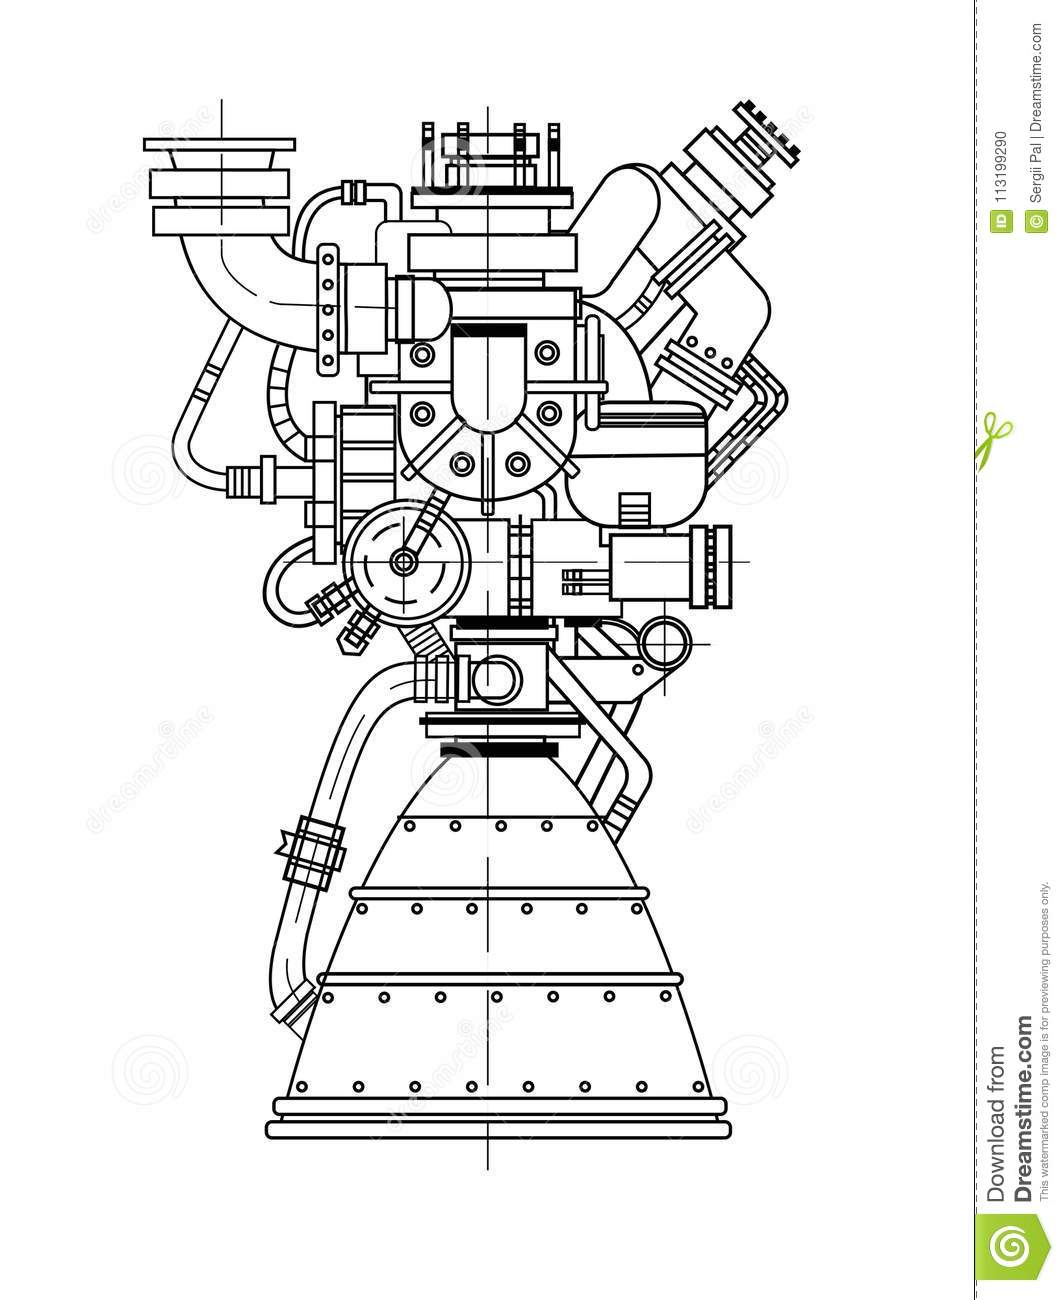 Rocket Engine Design It Can Be Used As An Illustration